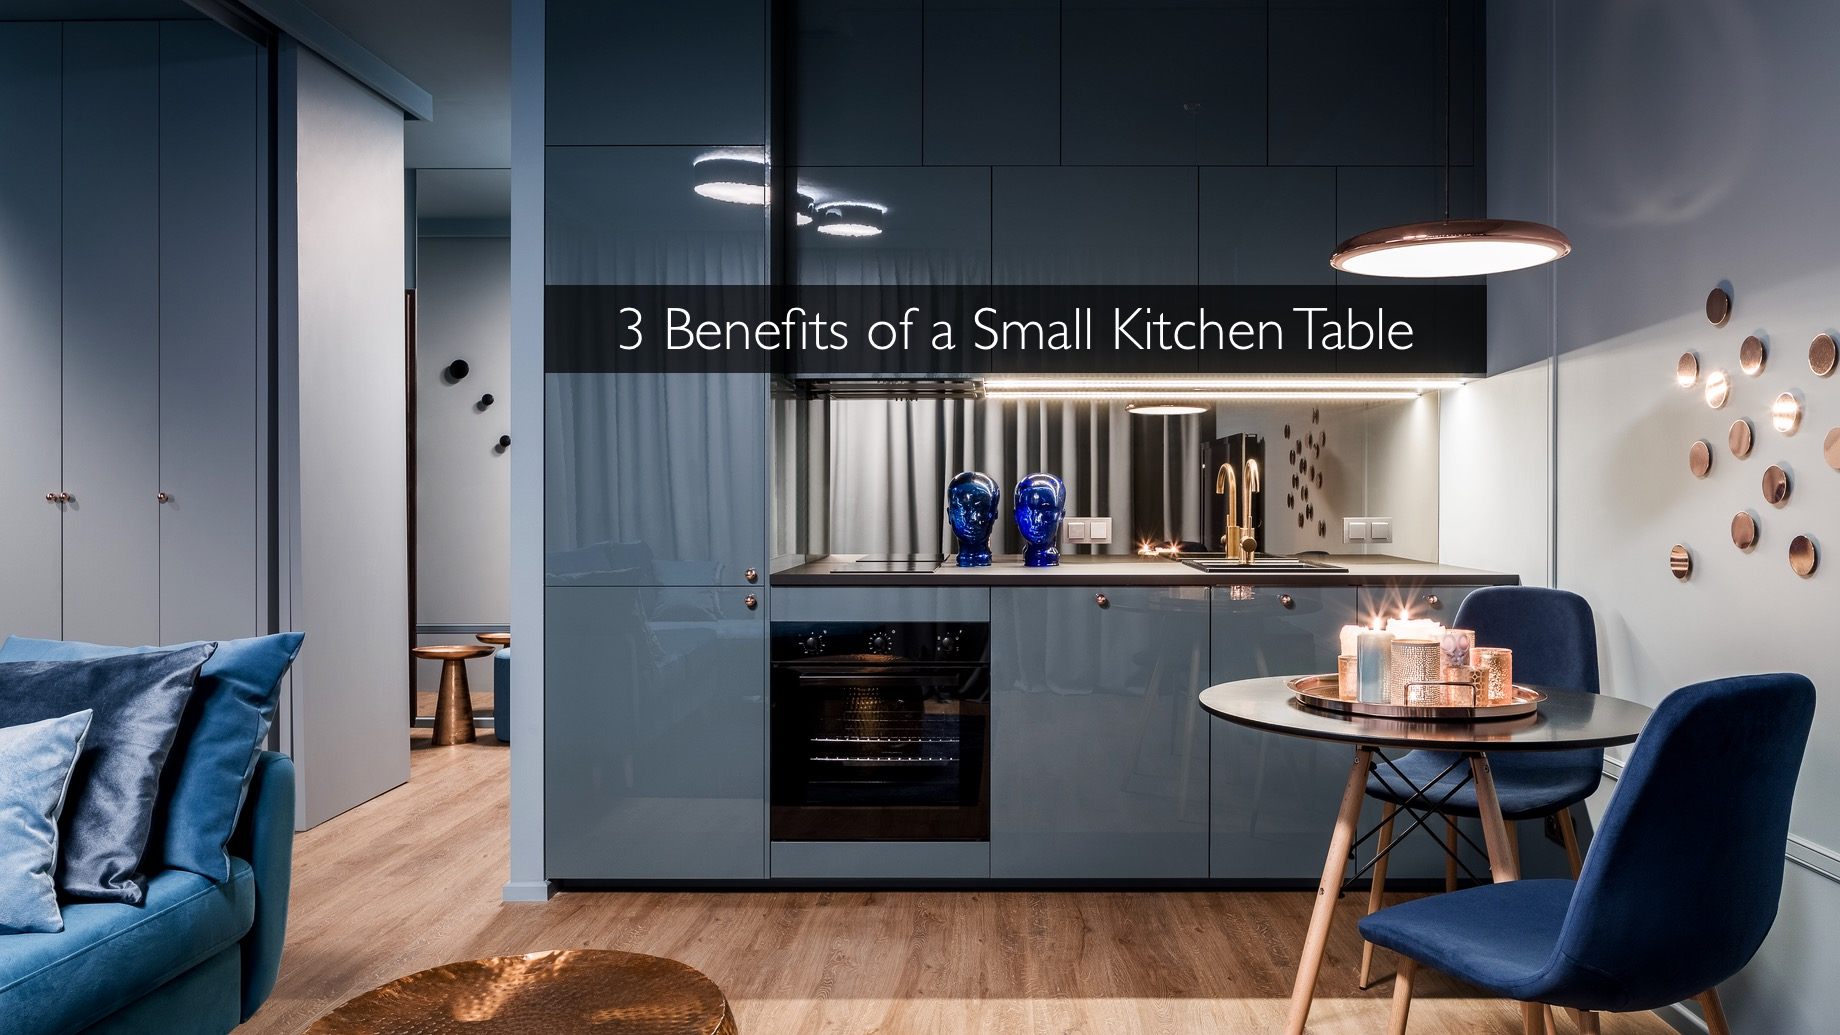 3 Benefits of a Small Kitchen Table